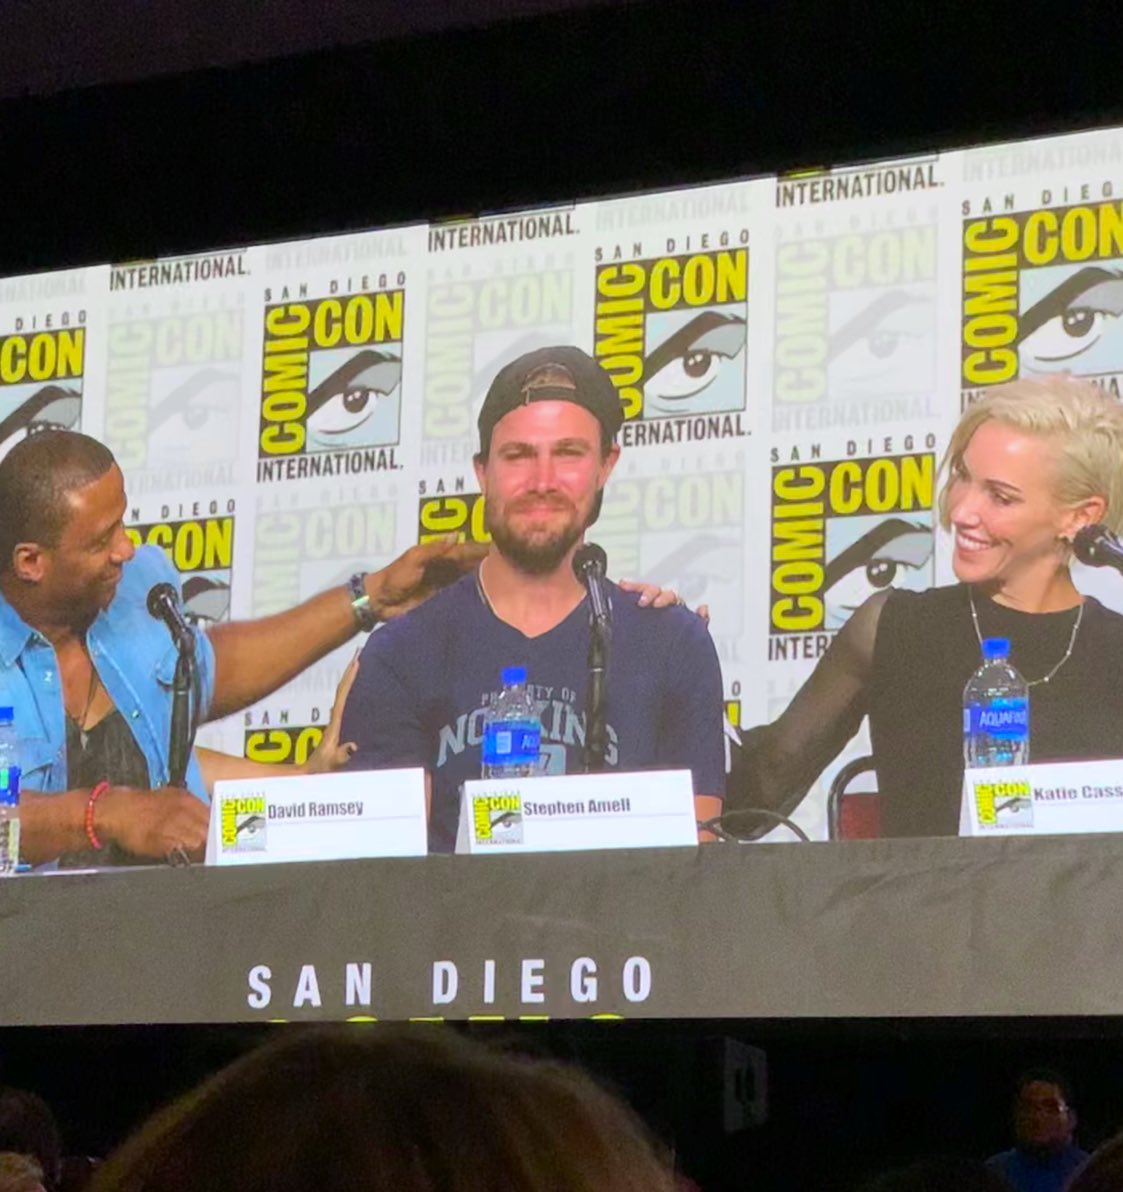 I can't stop looking at this shot & getting all teary-eyed. So glad to have been apart of #Arrow's final panel at #SDCC. @StephenAmell deserves all the love. He grew both personally & professionally taking on his first big TV role.   Nothing beats seeing genuine growth in people.<br>http://pic.twitter.com/6rYCw2A5Xs